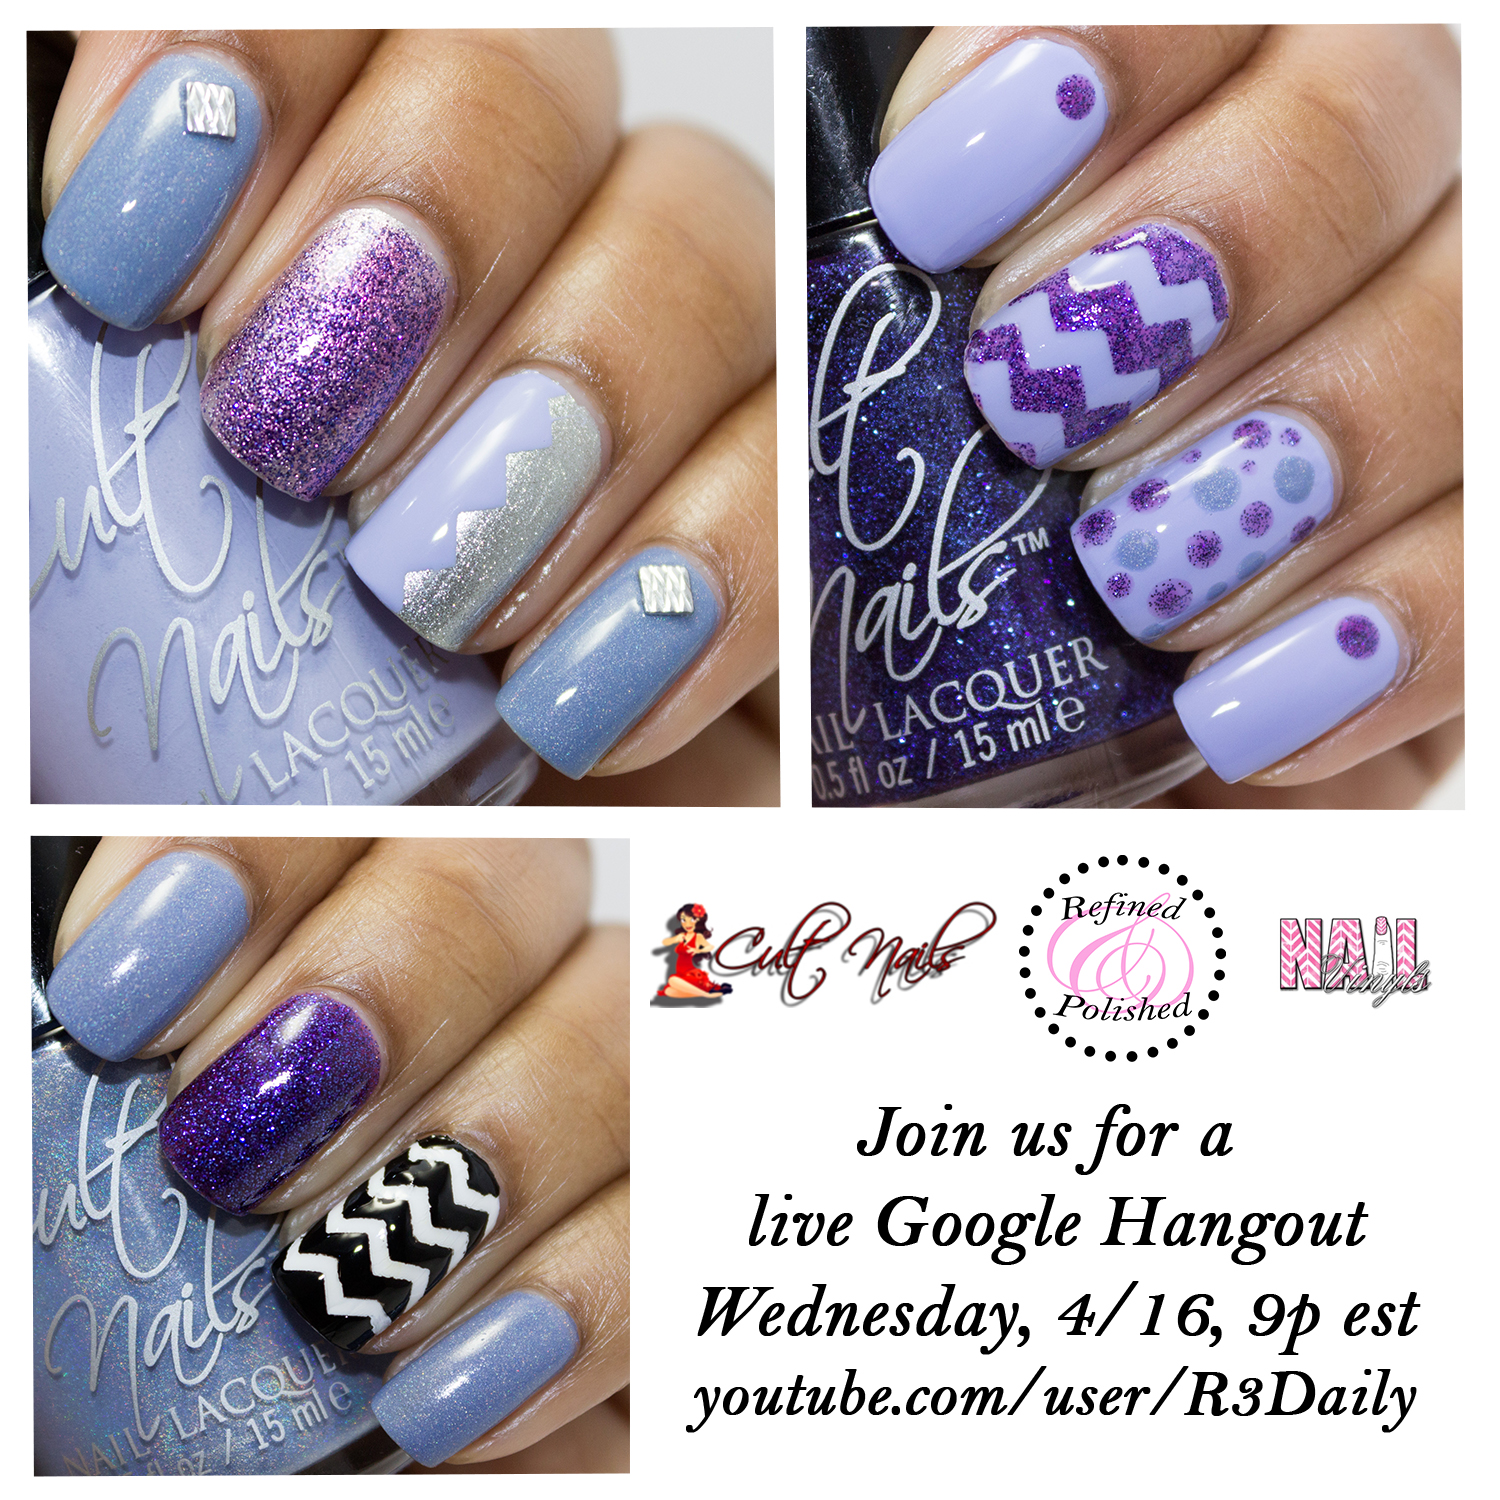 Google Hangout with Cult Nails - Refined and Polished